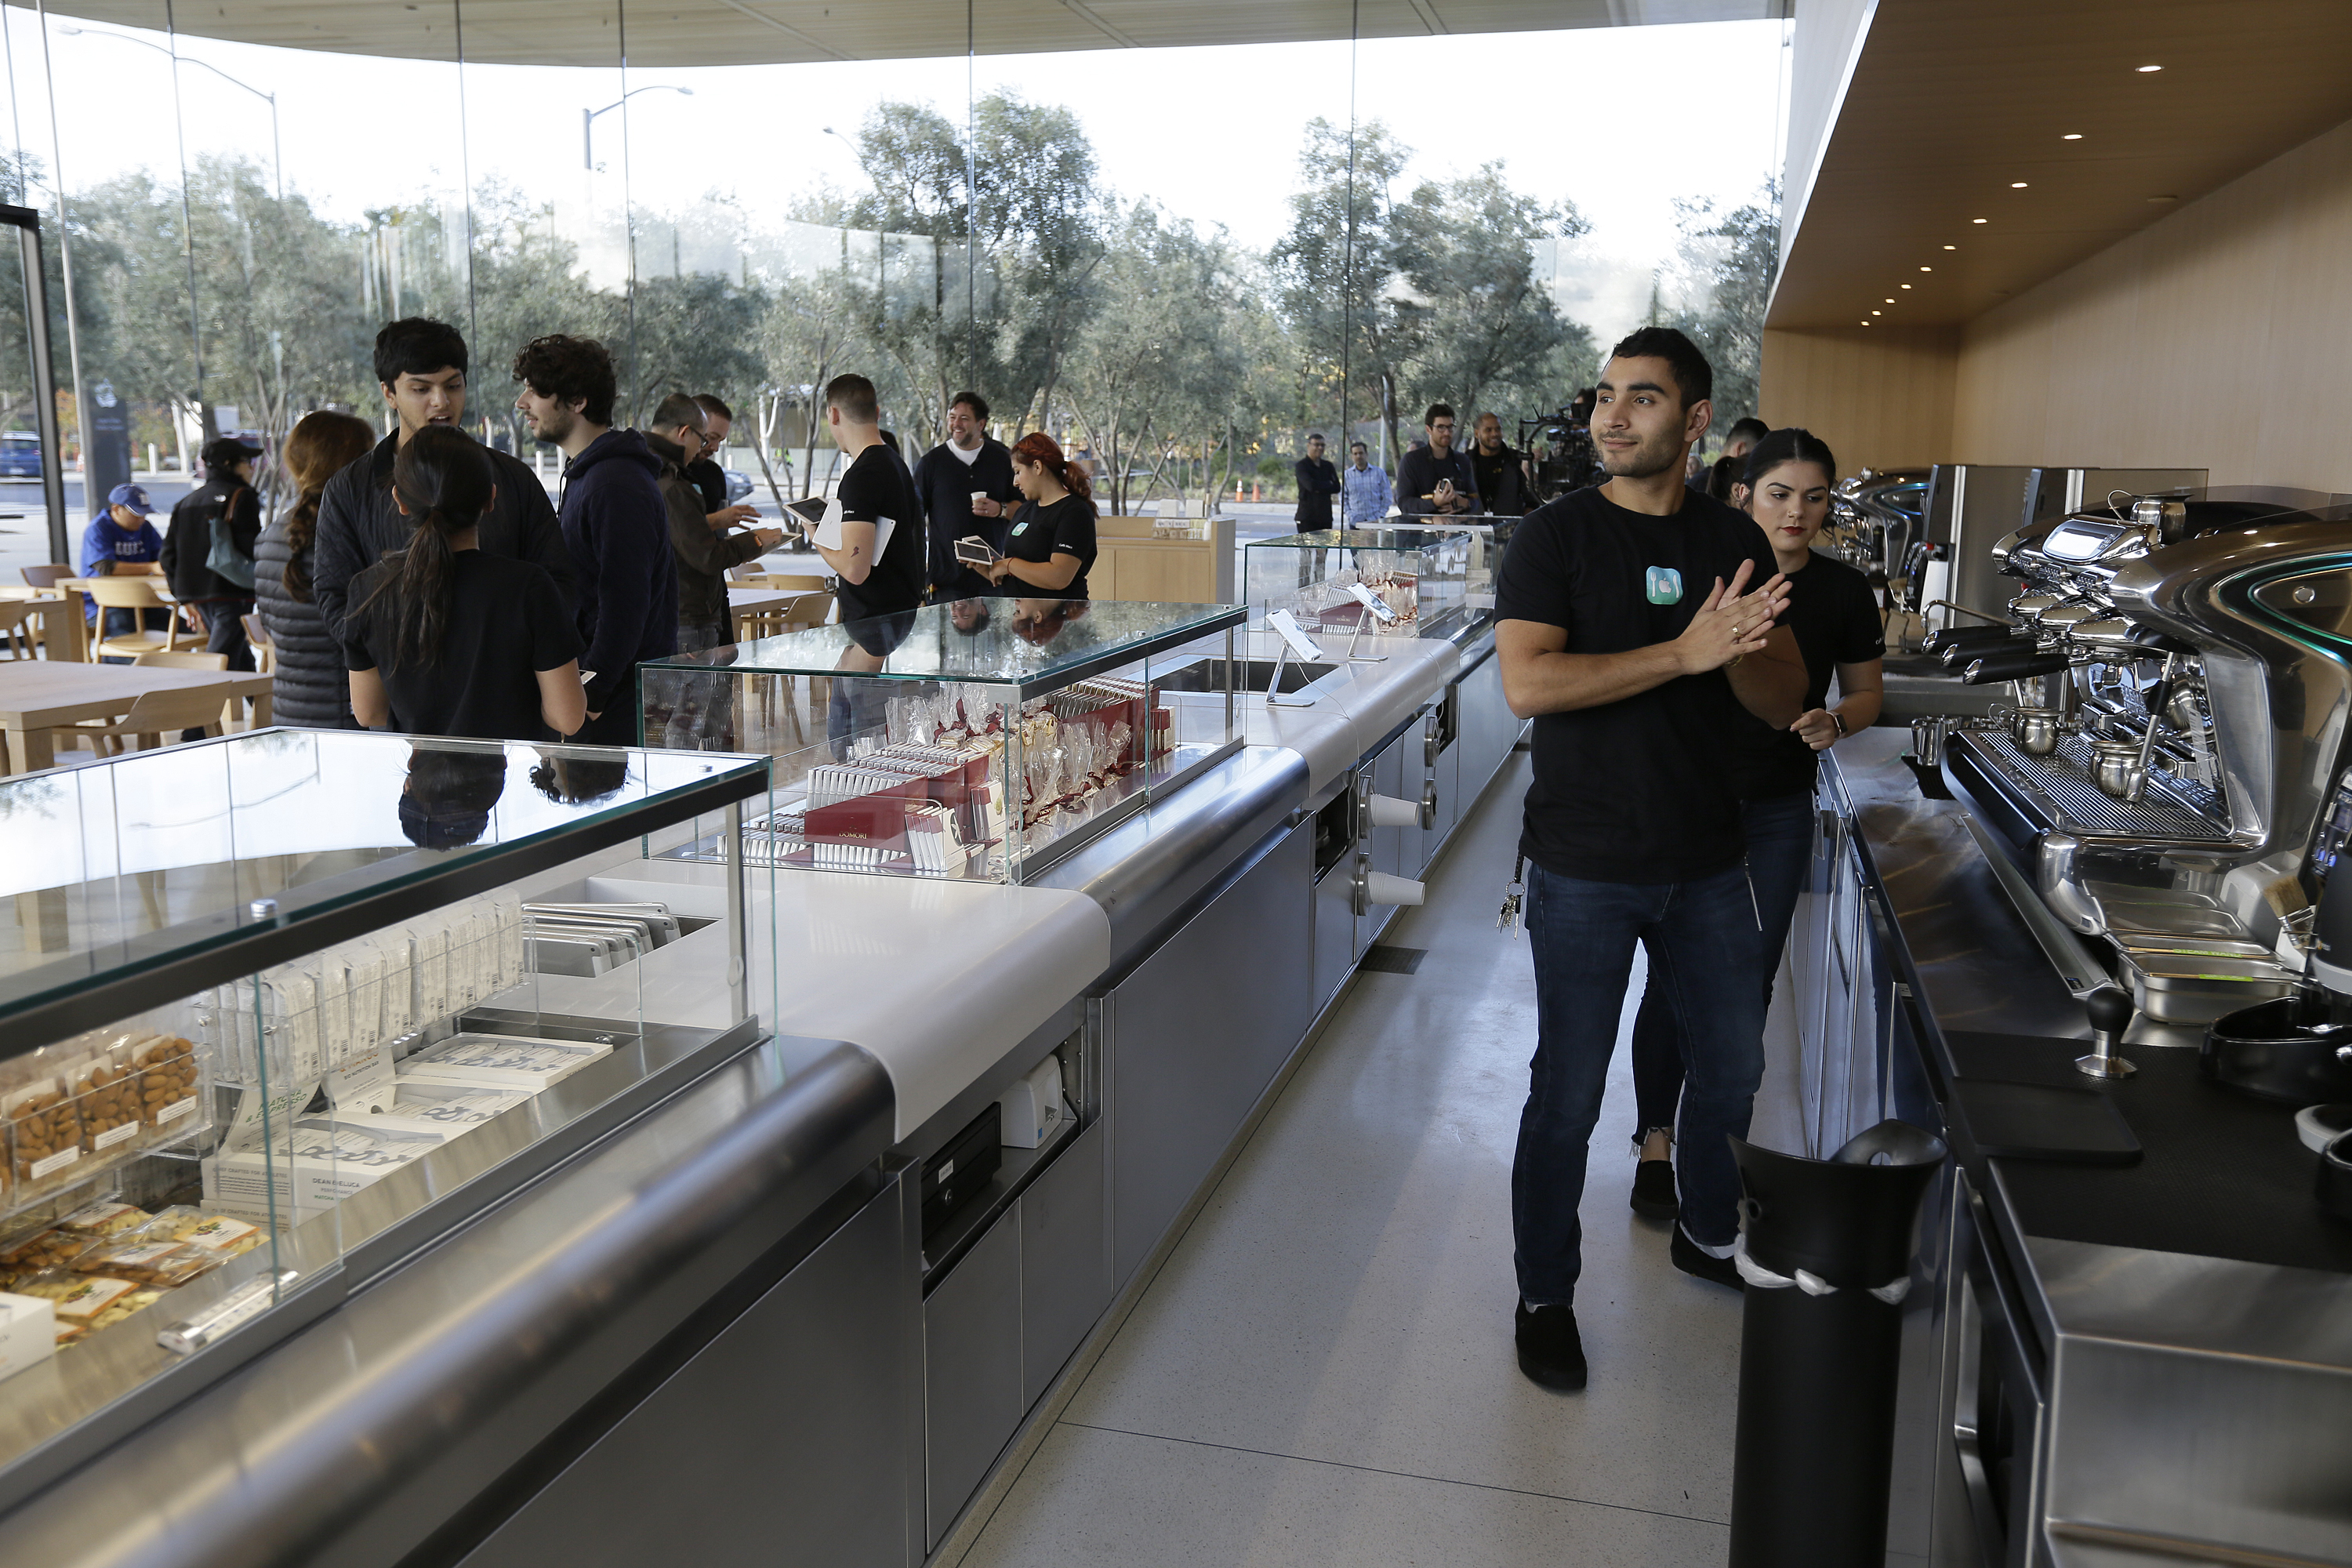 <div class='meta'><div class='origin-logo' data-origin='none'></div><span class='caption-text' data-credit='AP'>Shown is the cafe during the grand opening of the Apple Park Visitor Center Friday, Nov. 17, 2017, in Cupertino, Calif. (AP Photo/Eric Risberg)</span></div>